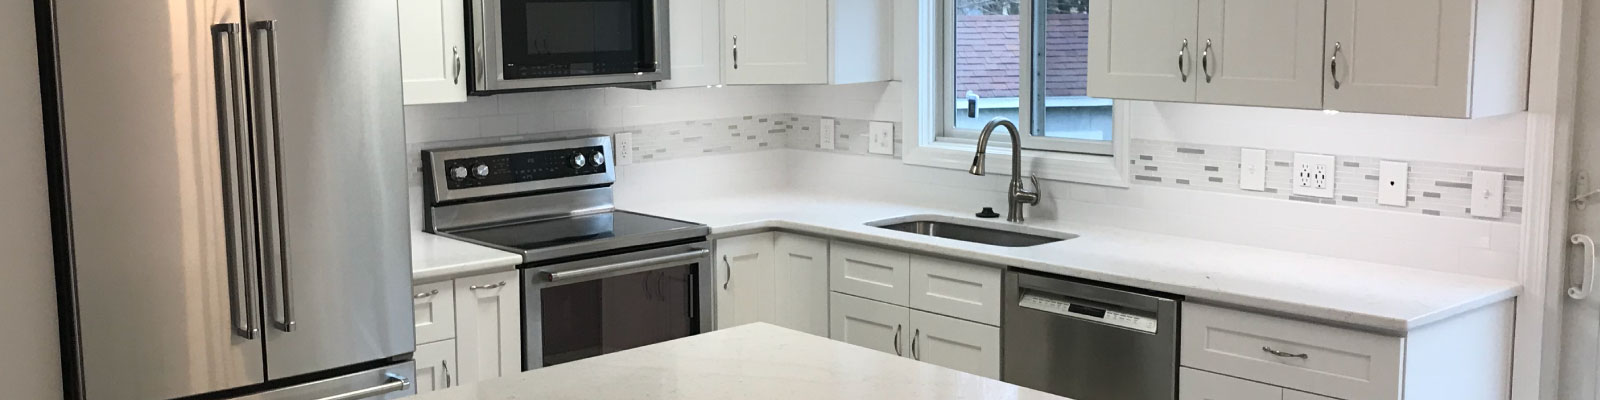 Perfect Utah Kitchen Remodeling And Bathroom Remodeling